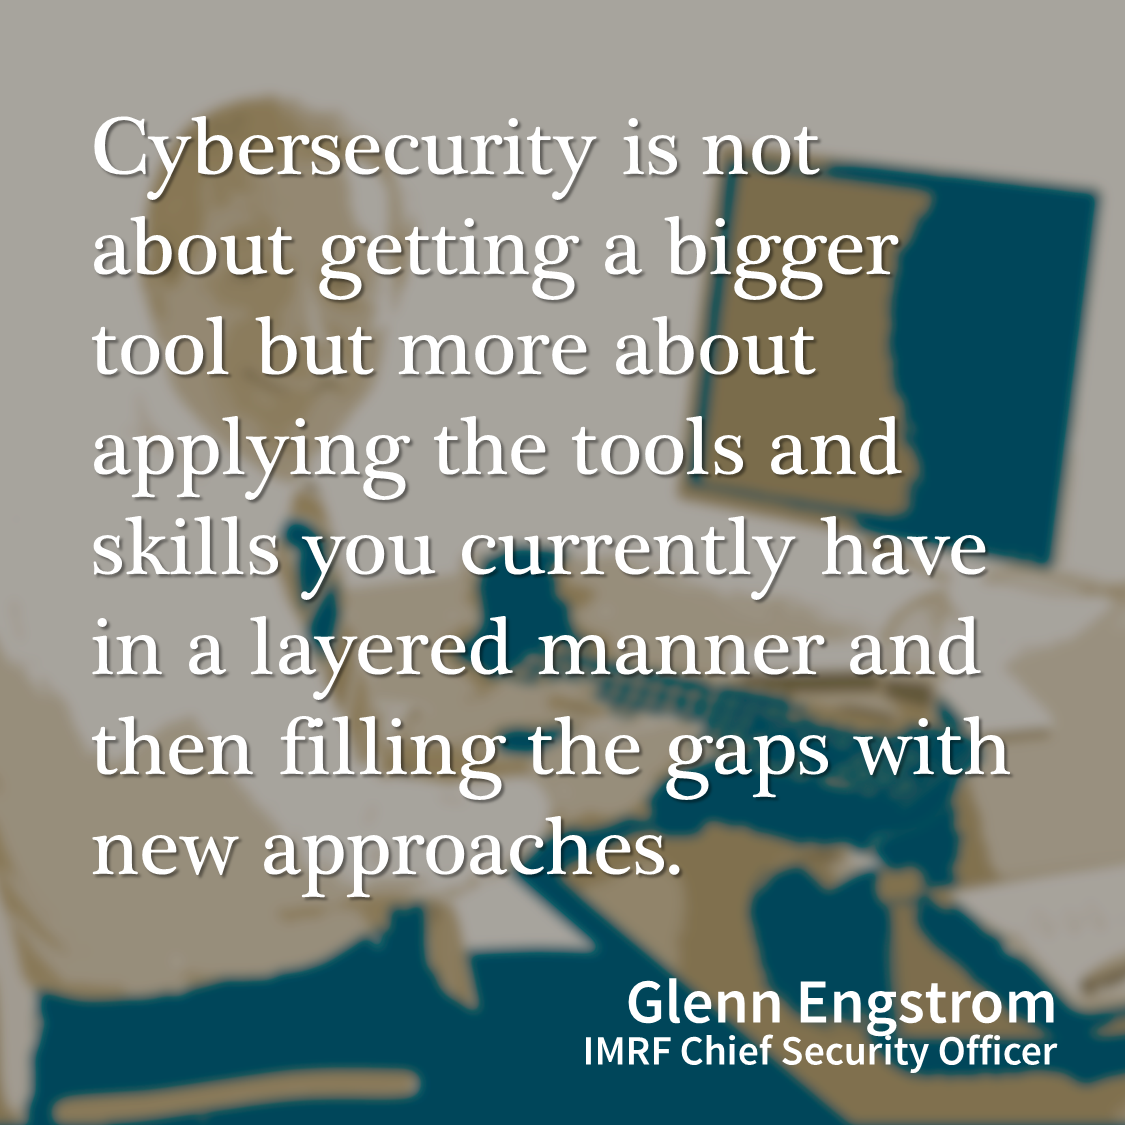 Cybersecurity quote - Glenn Engstrom - IMRF